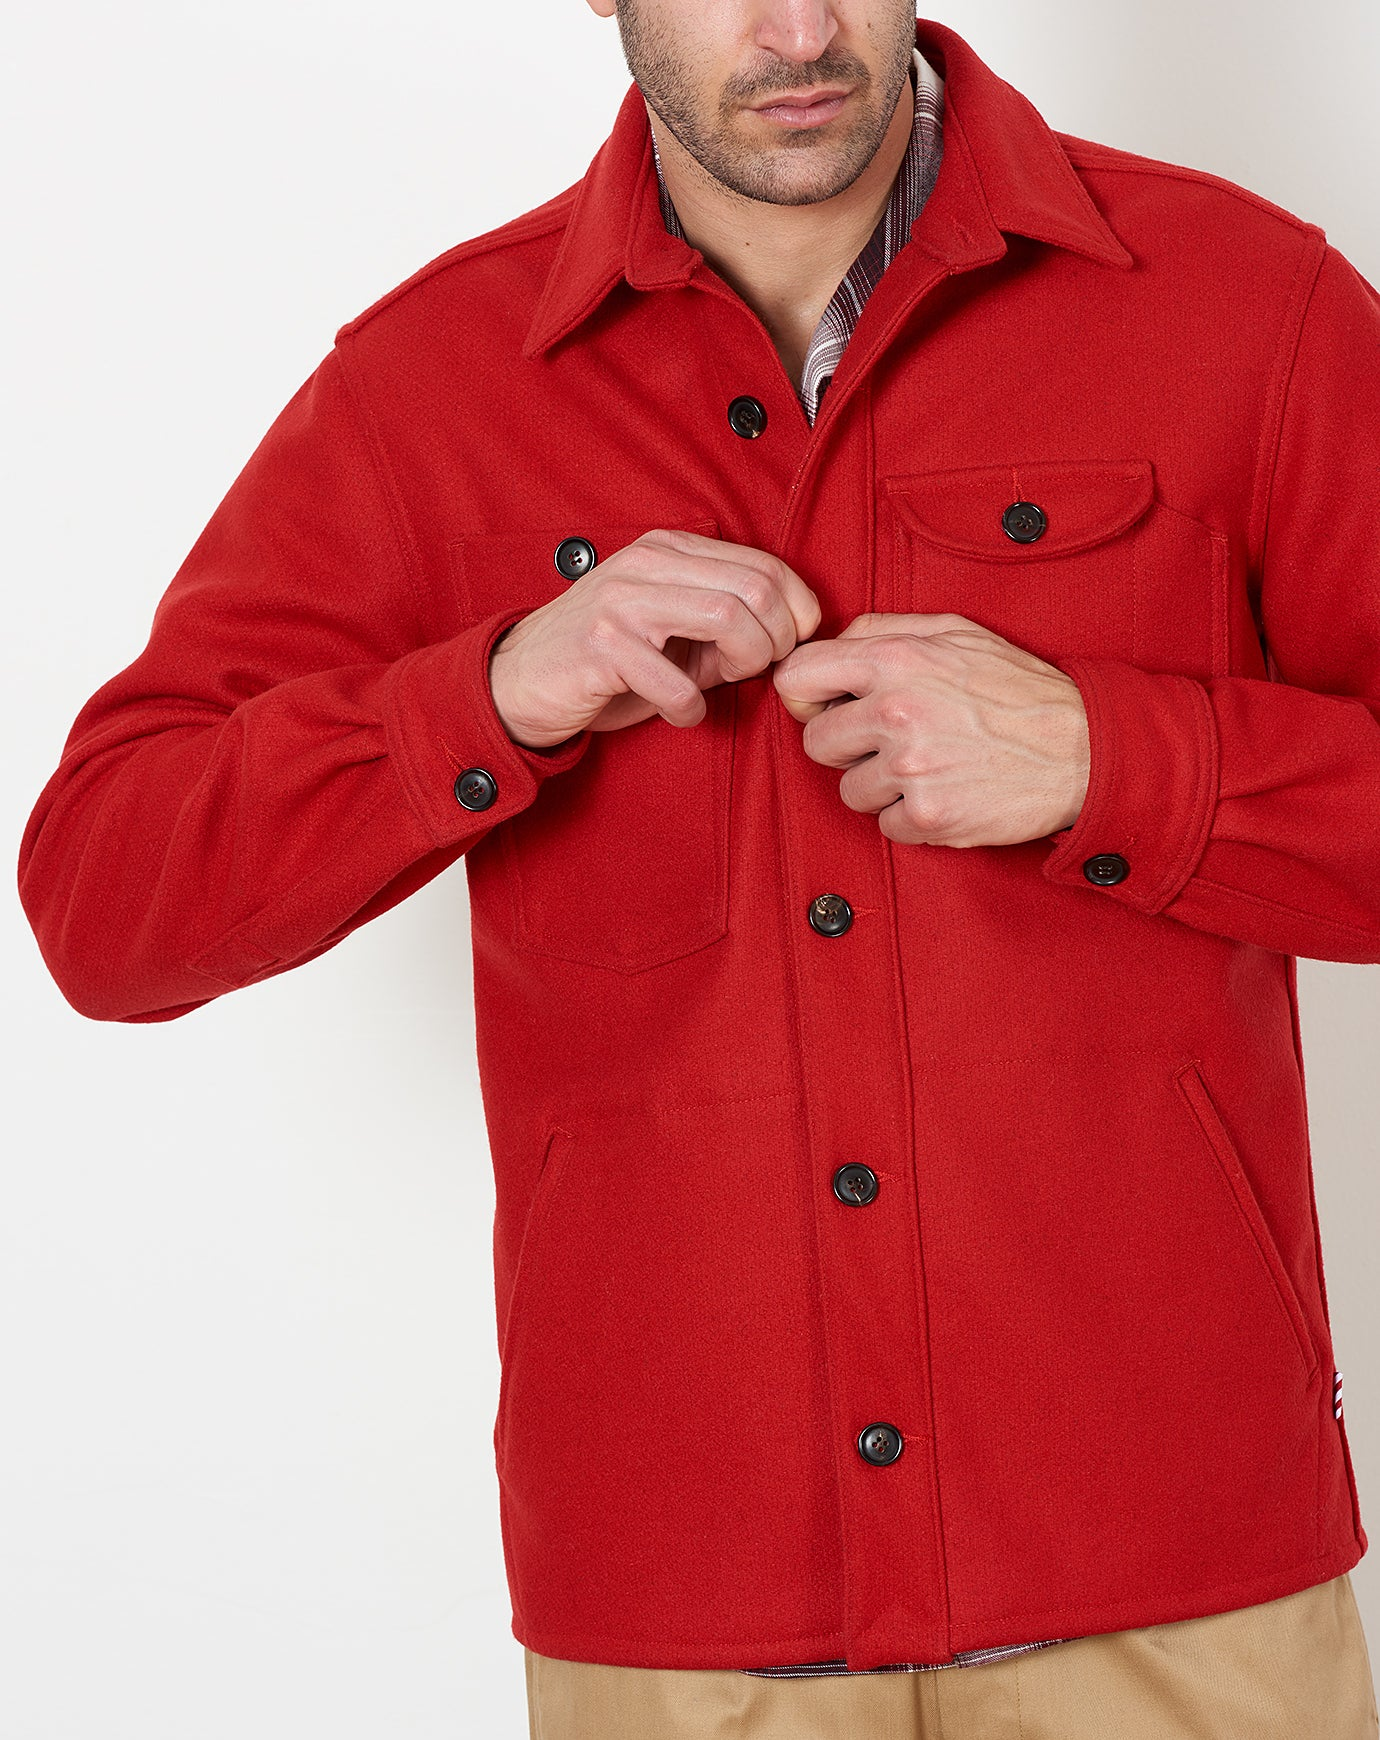 Camp Shirt in Red Melton